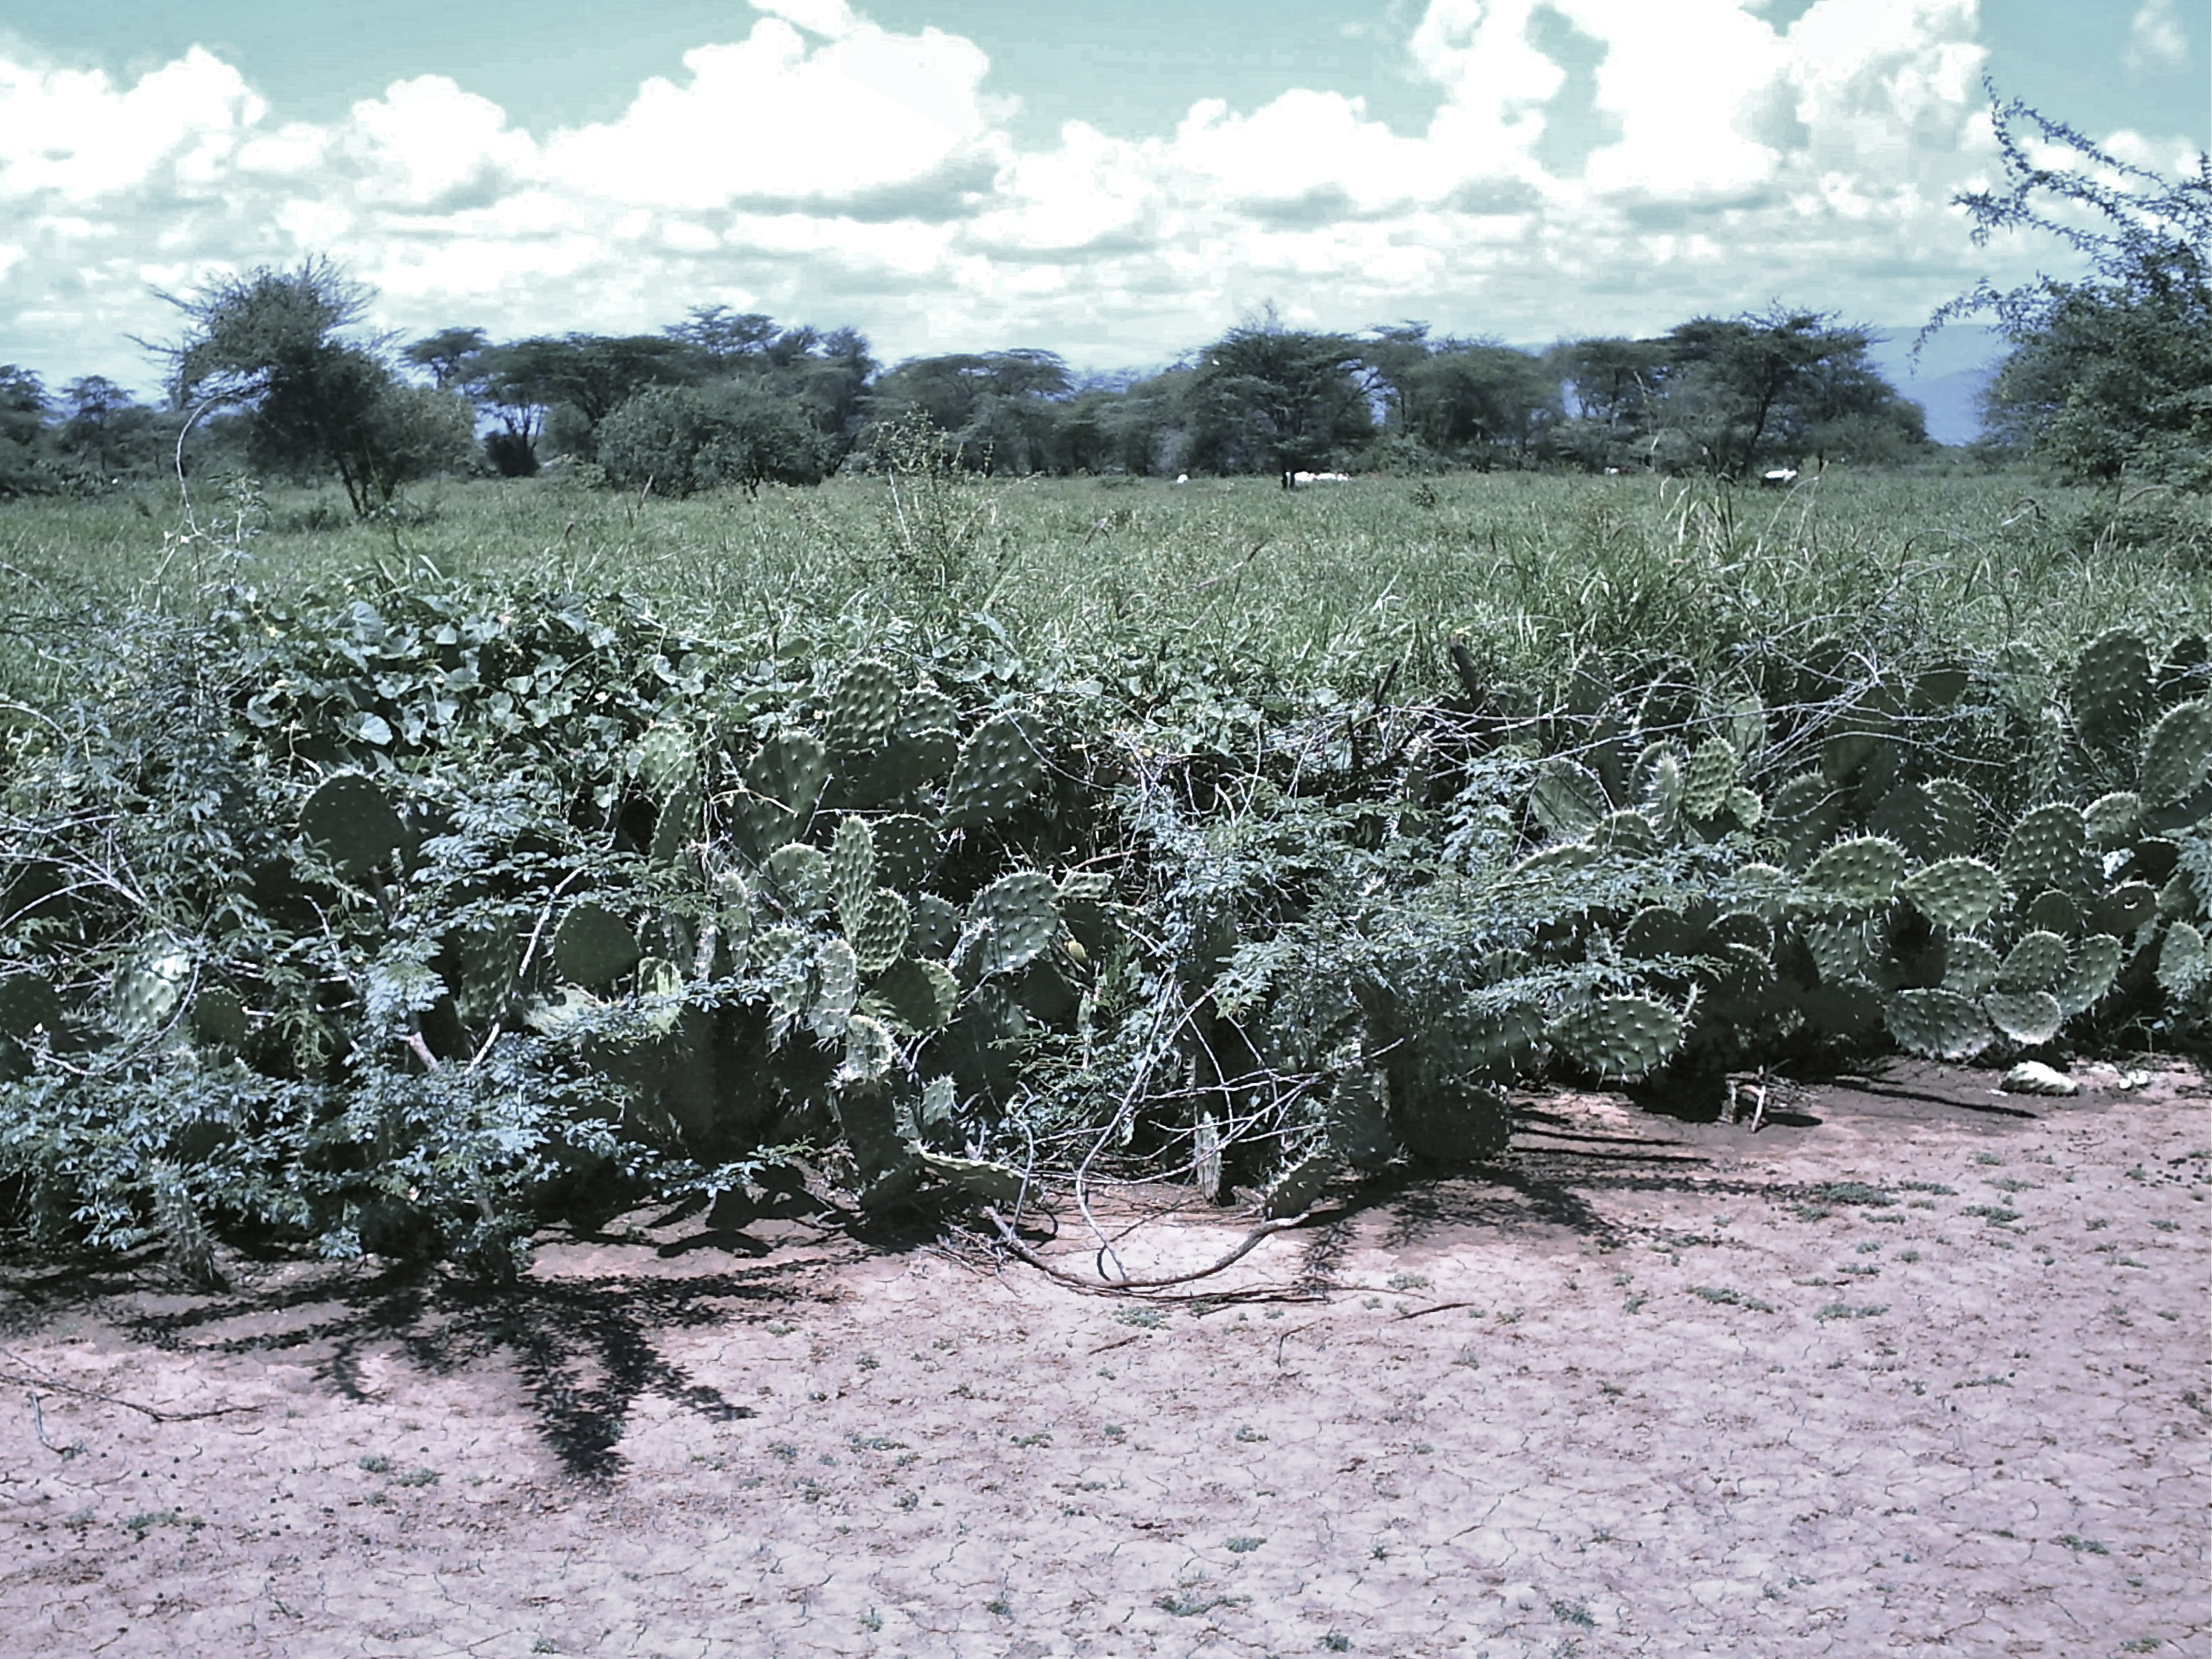 Prickly Pear (Opuntia Ficus Indica) For Living Fences And Livestock Feed In  The Drylands (Stephen MUREITHI / Willem VAN COTTHEM)